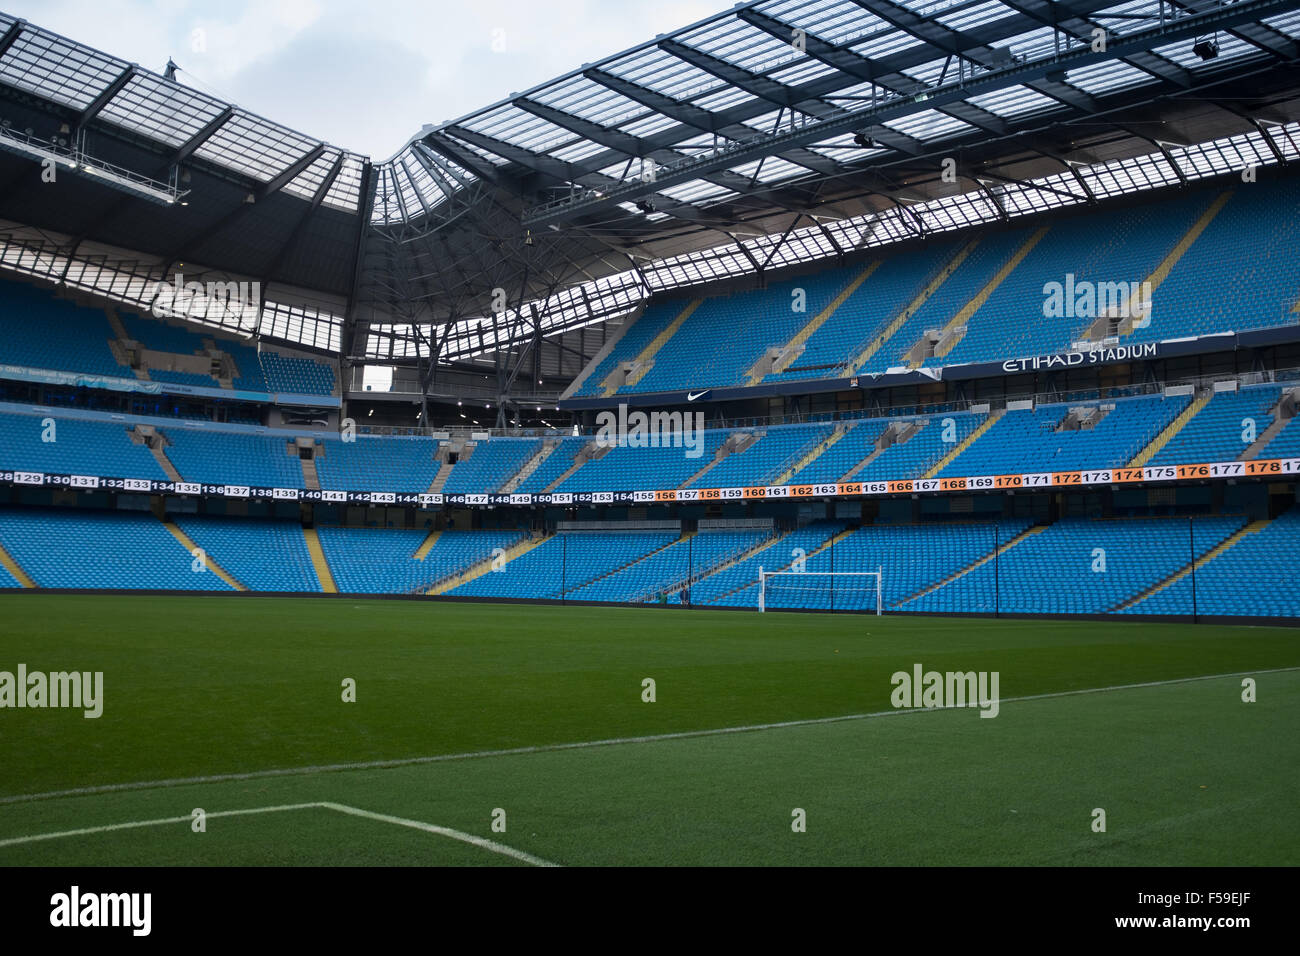 Etihad stadium, Manchester, home of Manchester City FC - Stock Image